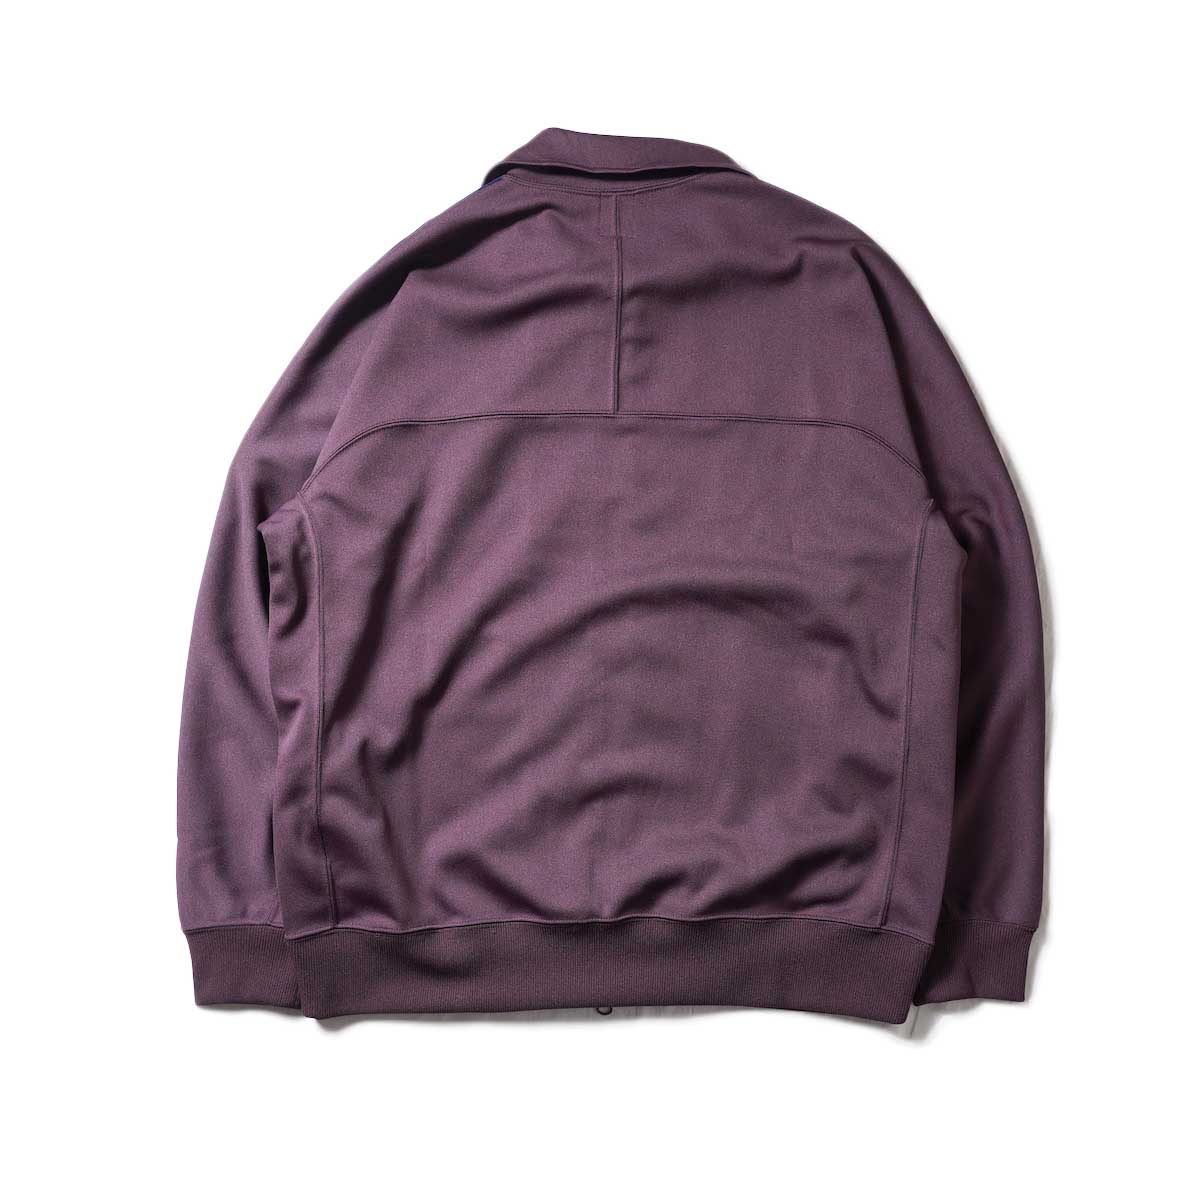 South2 West8 / Trainer jacket - Poly Smooth (Burgundy)背面